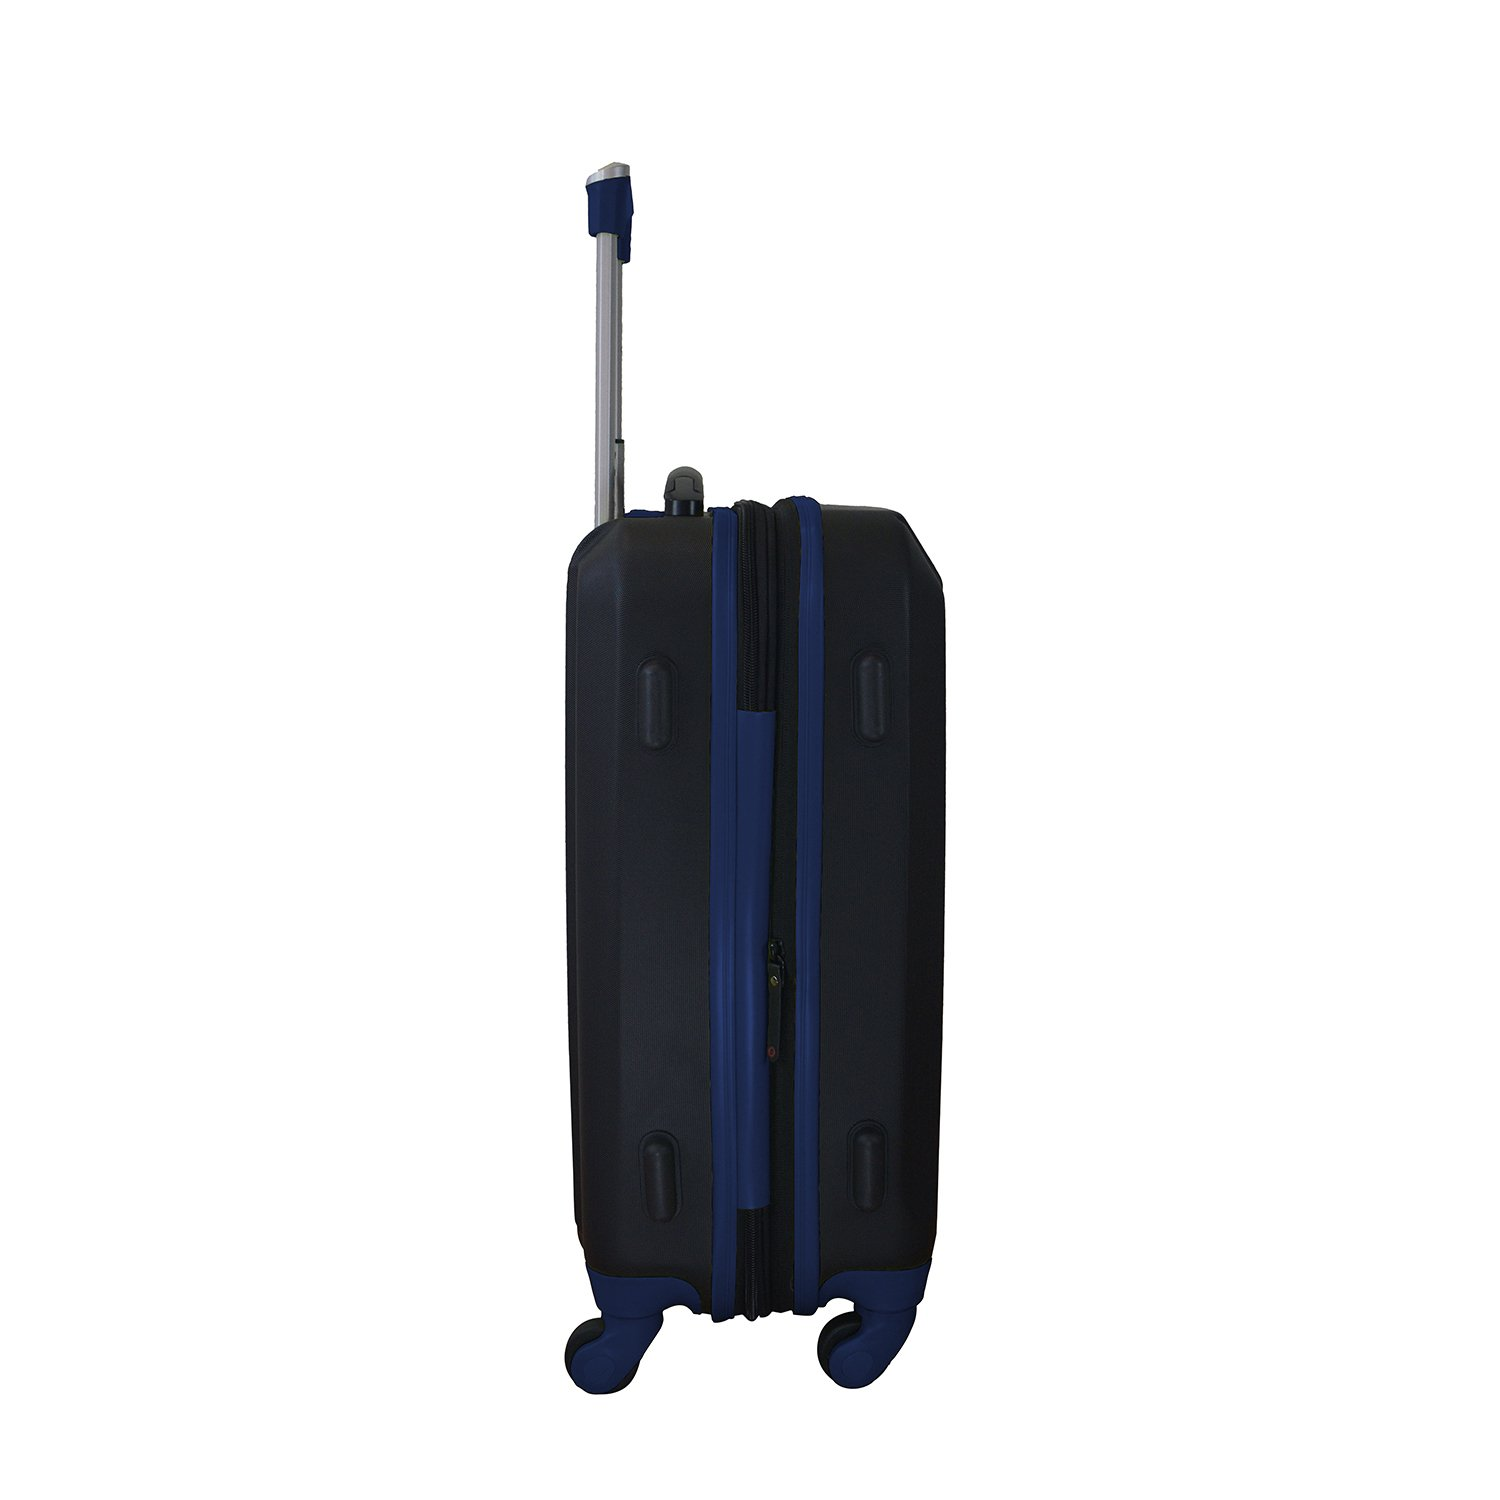 NHL Columbus Blue Jackets 2-Piece Luggage Set by Denco (Image #4)